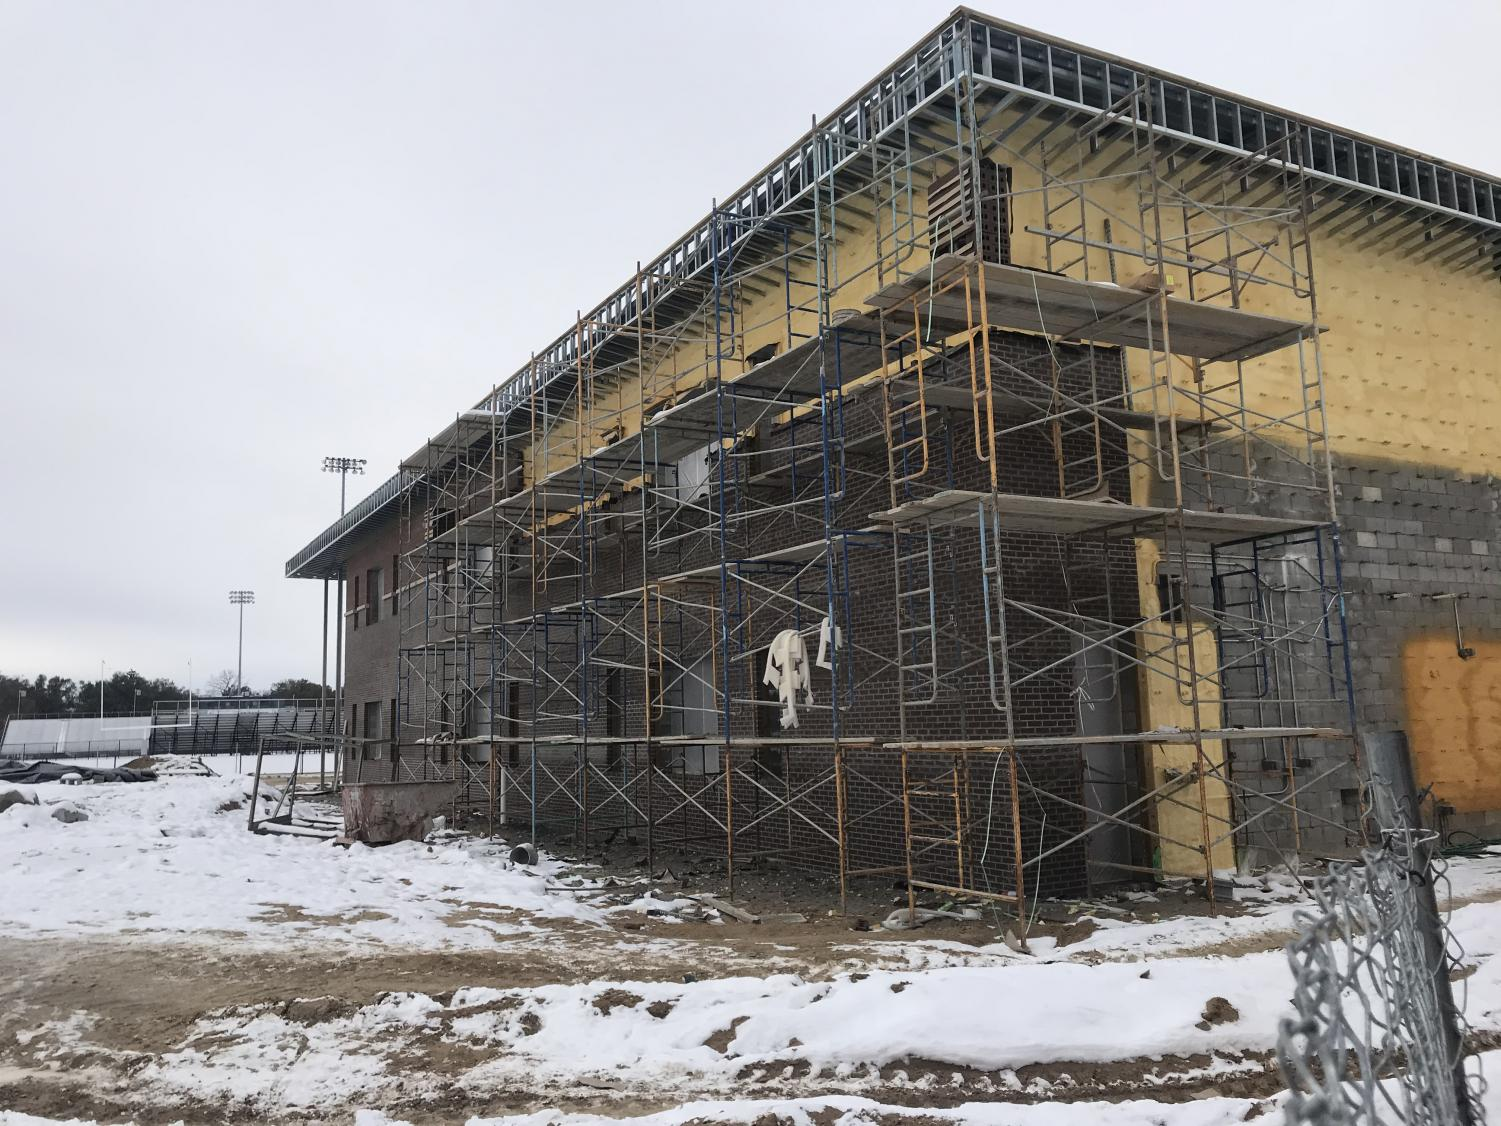 The new building is expected to be finished by Fall of 2020.